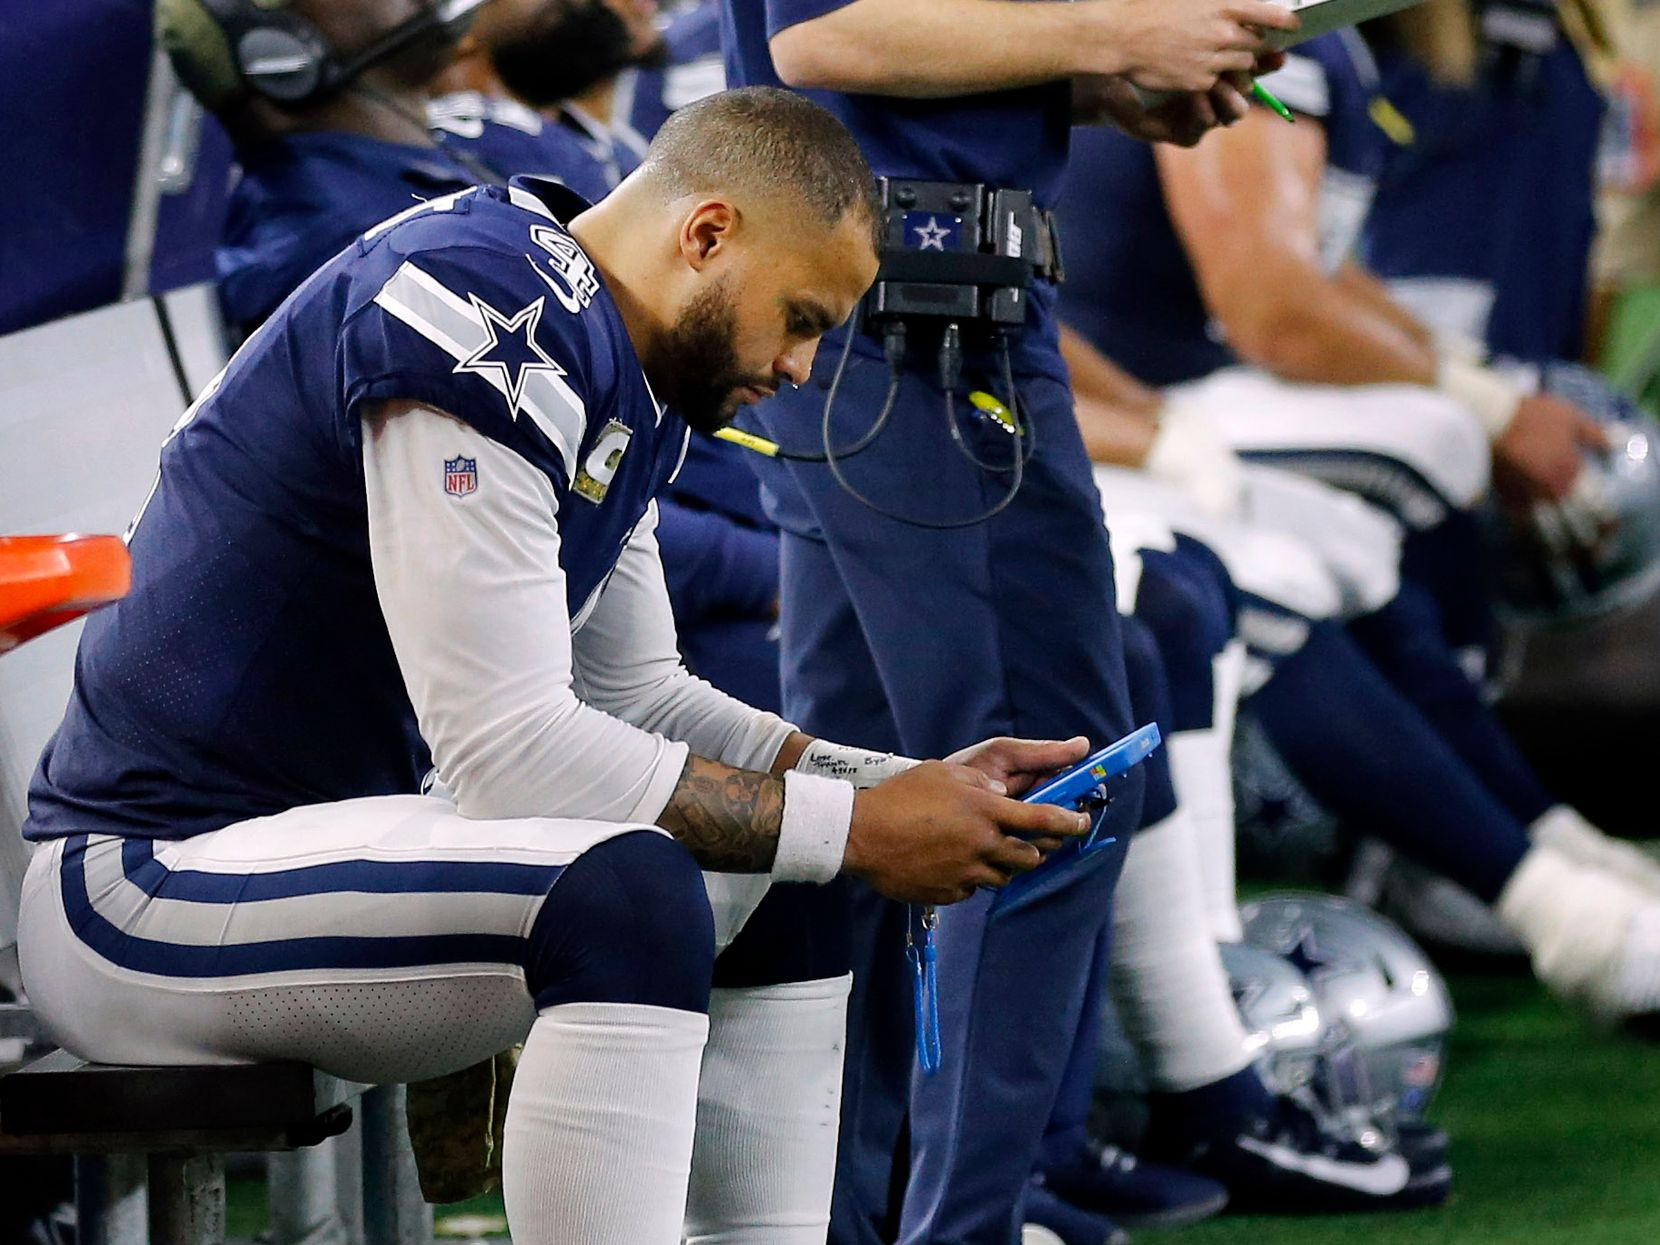 Dallas Cowboys quarterback Dak Prescott (4) looks at a tablet on the bench after he couldn't convert a fourth down play late in the fourth quarter against the Minnesota Vikings at AT&T Stadium in Arlington, Texas, Sunday, November 10, 2019. Offensive coordinator Kellen Moore looks at the video board. (Tom Fox/The Dallas Morning News)